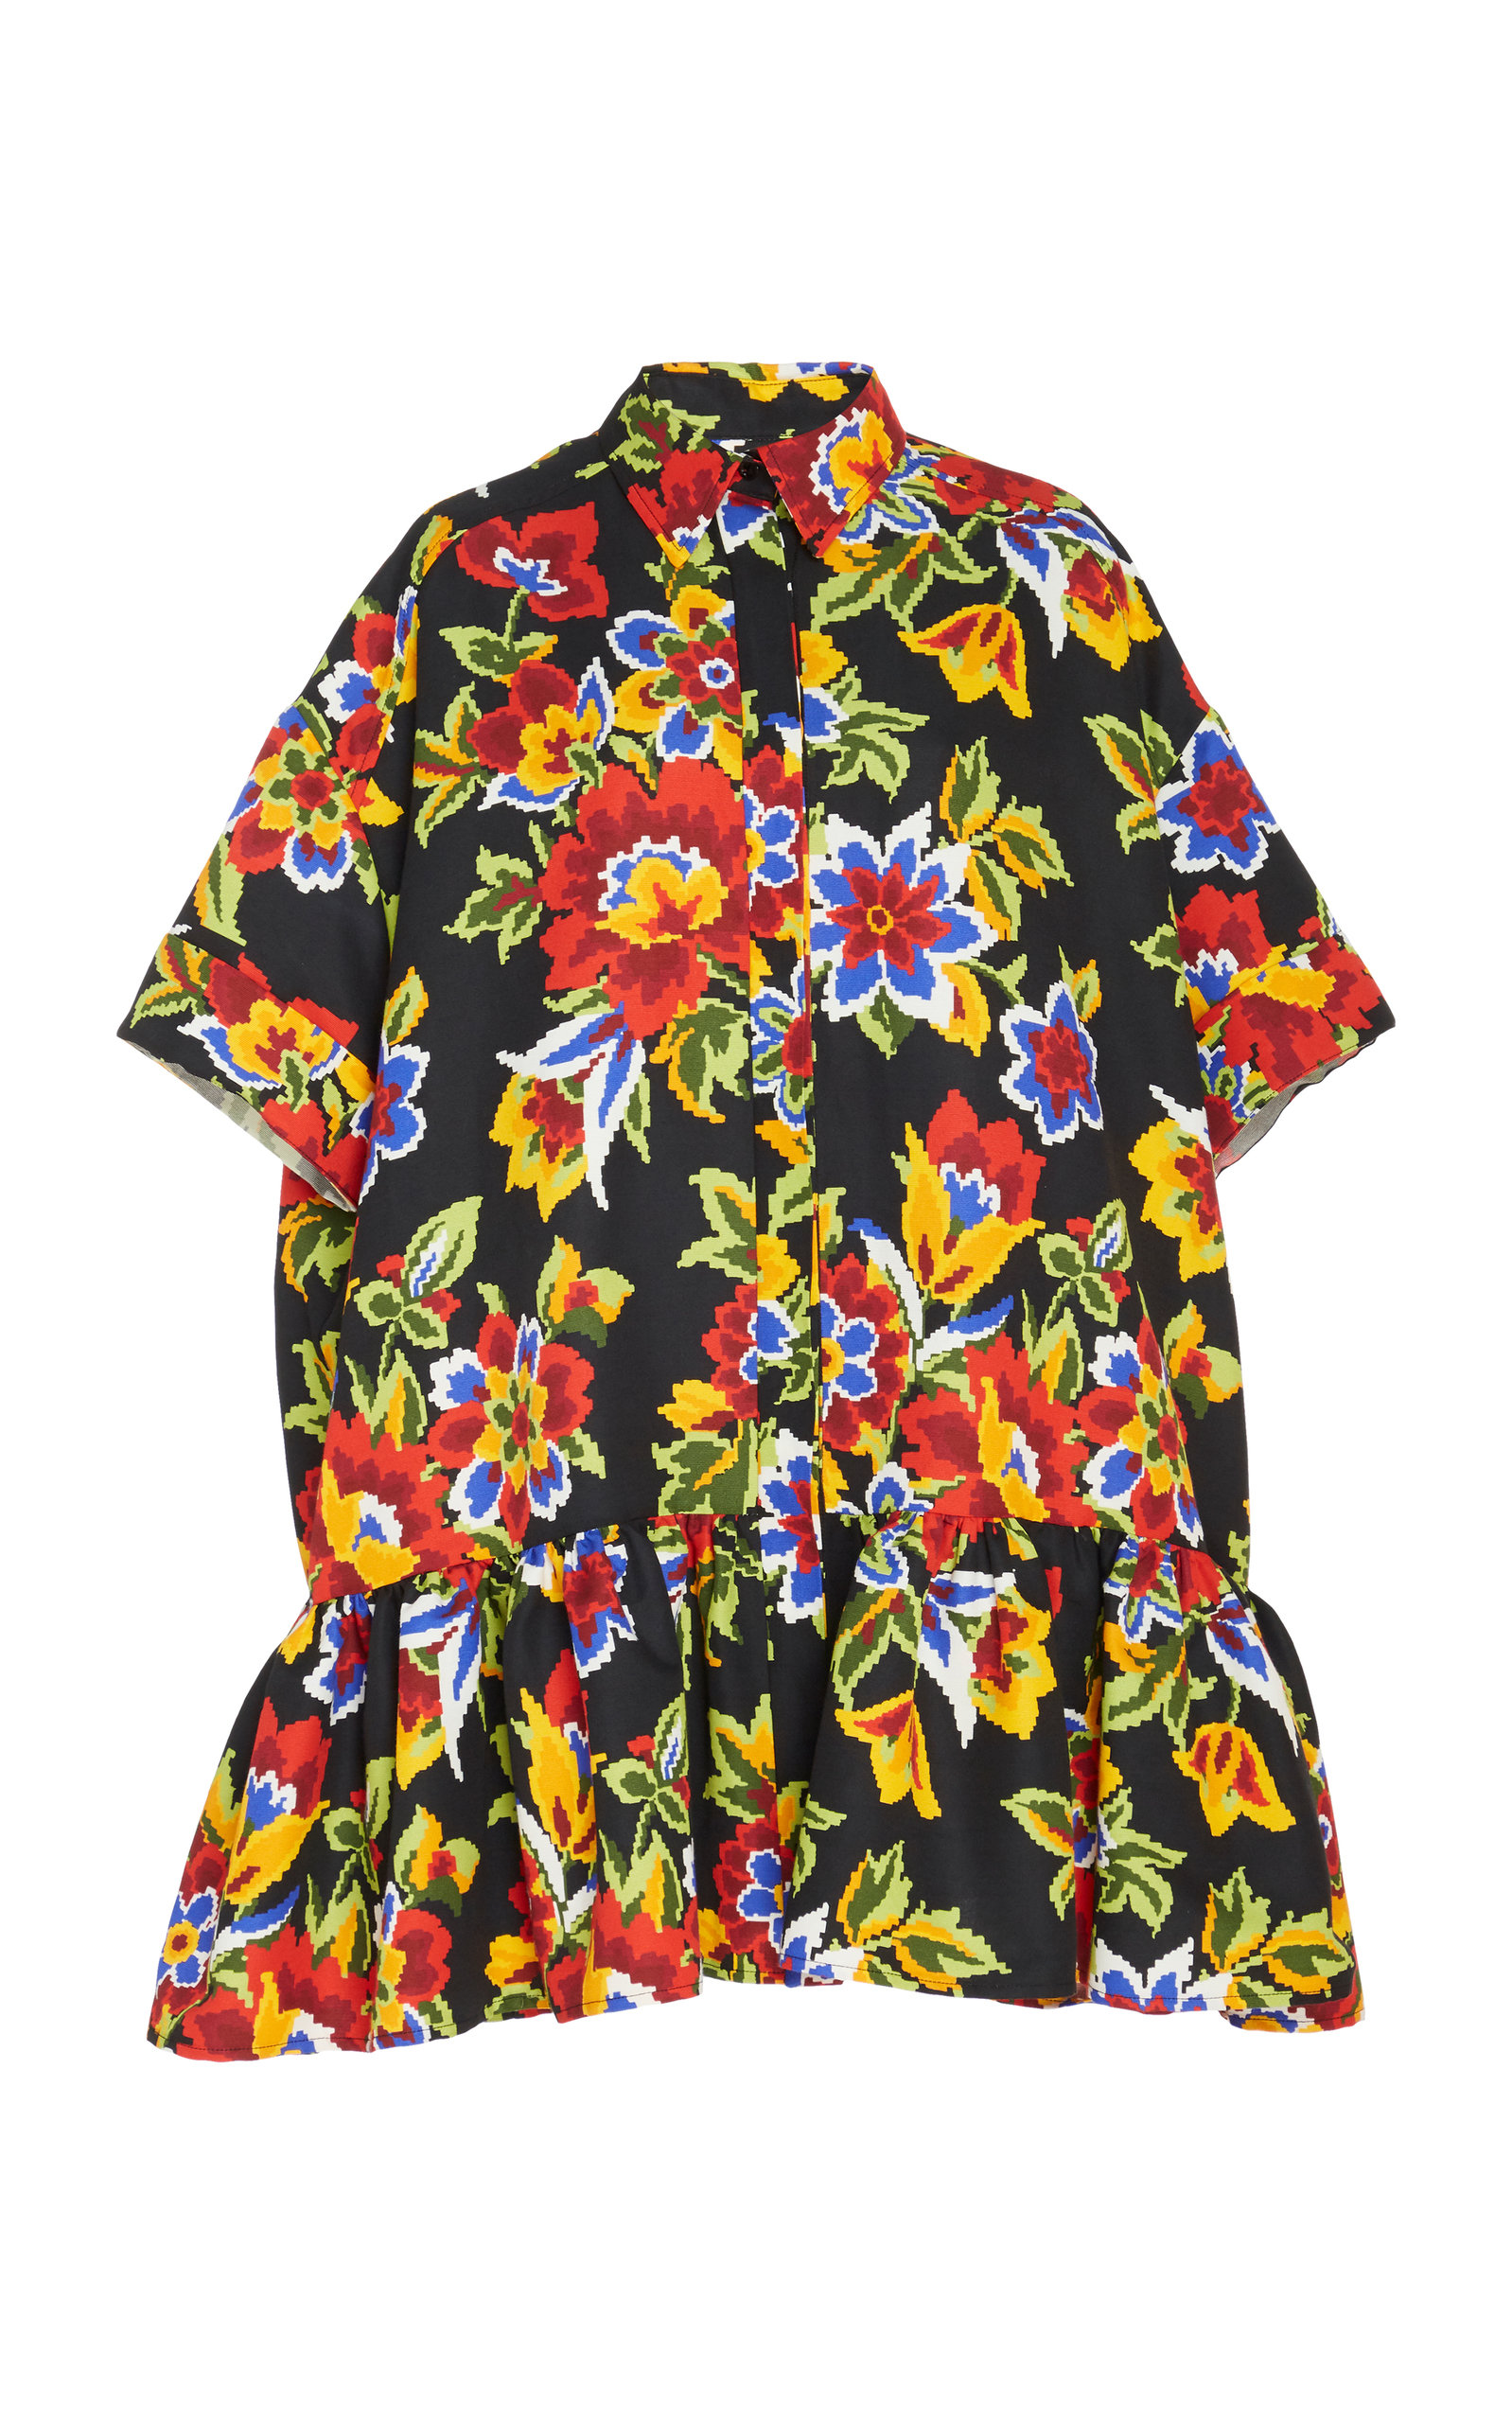 Buy Carolina Herrera Ruffled Floral-Print Cotton And Silk-Blend Dress online, shop Carolina Herrera at the best price